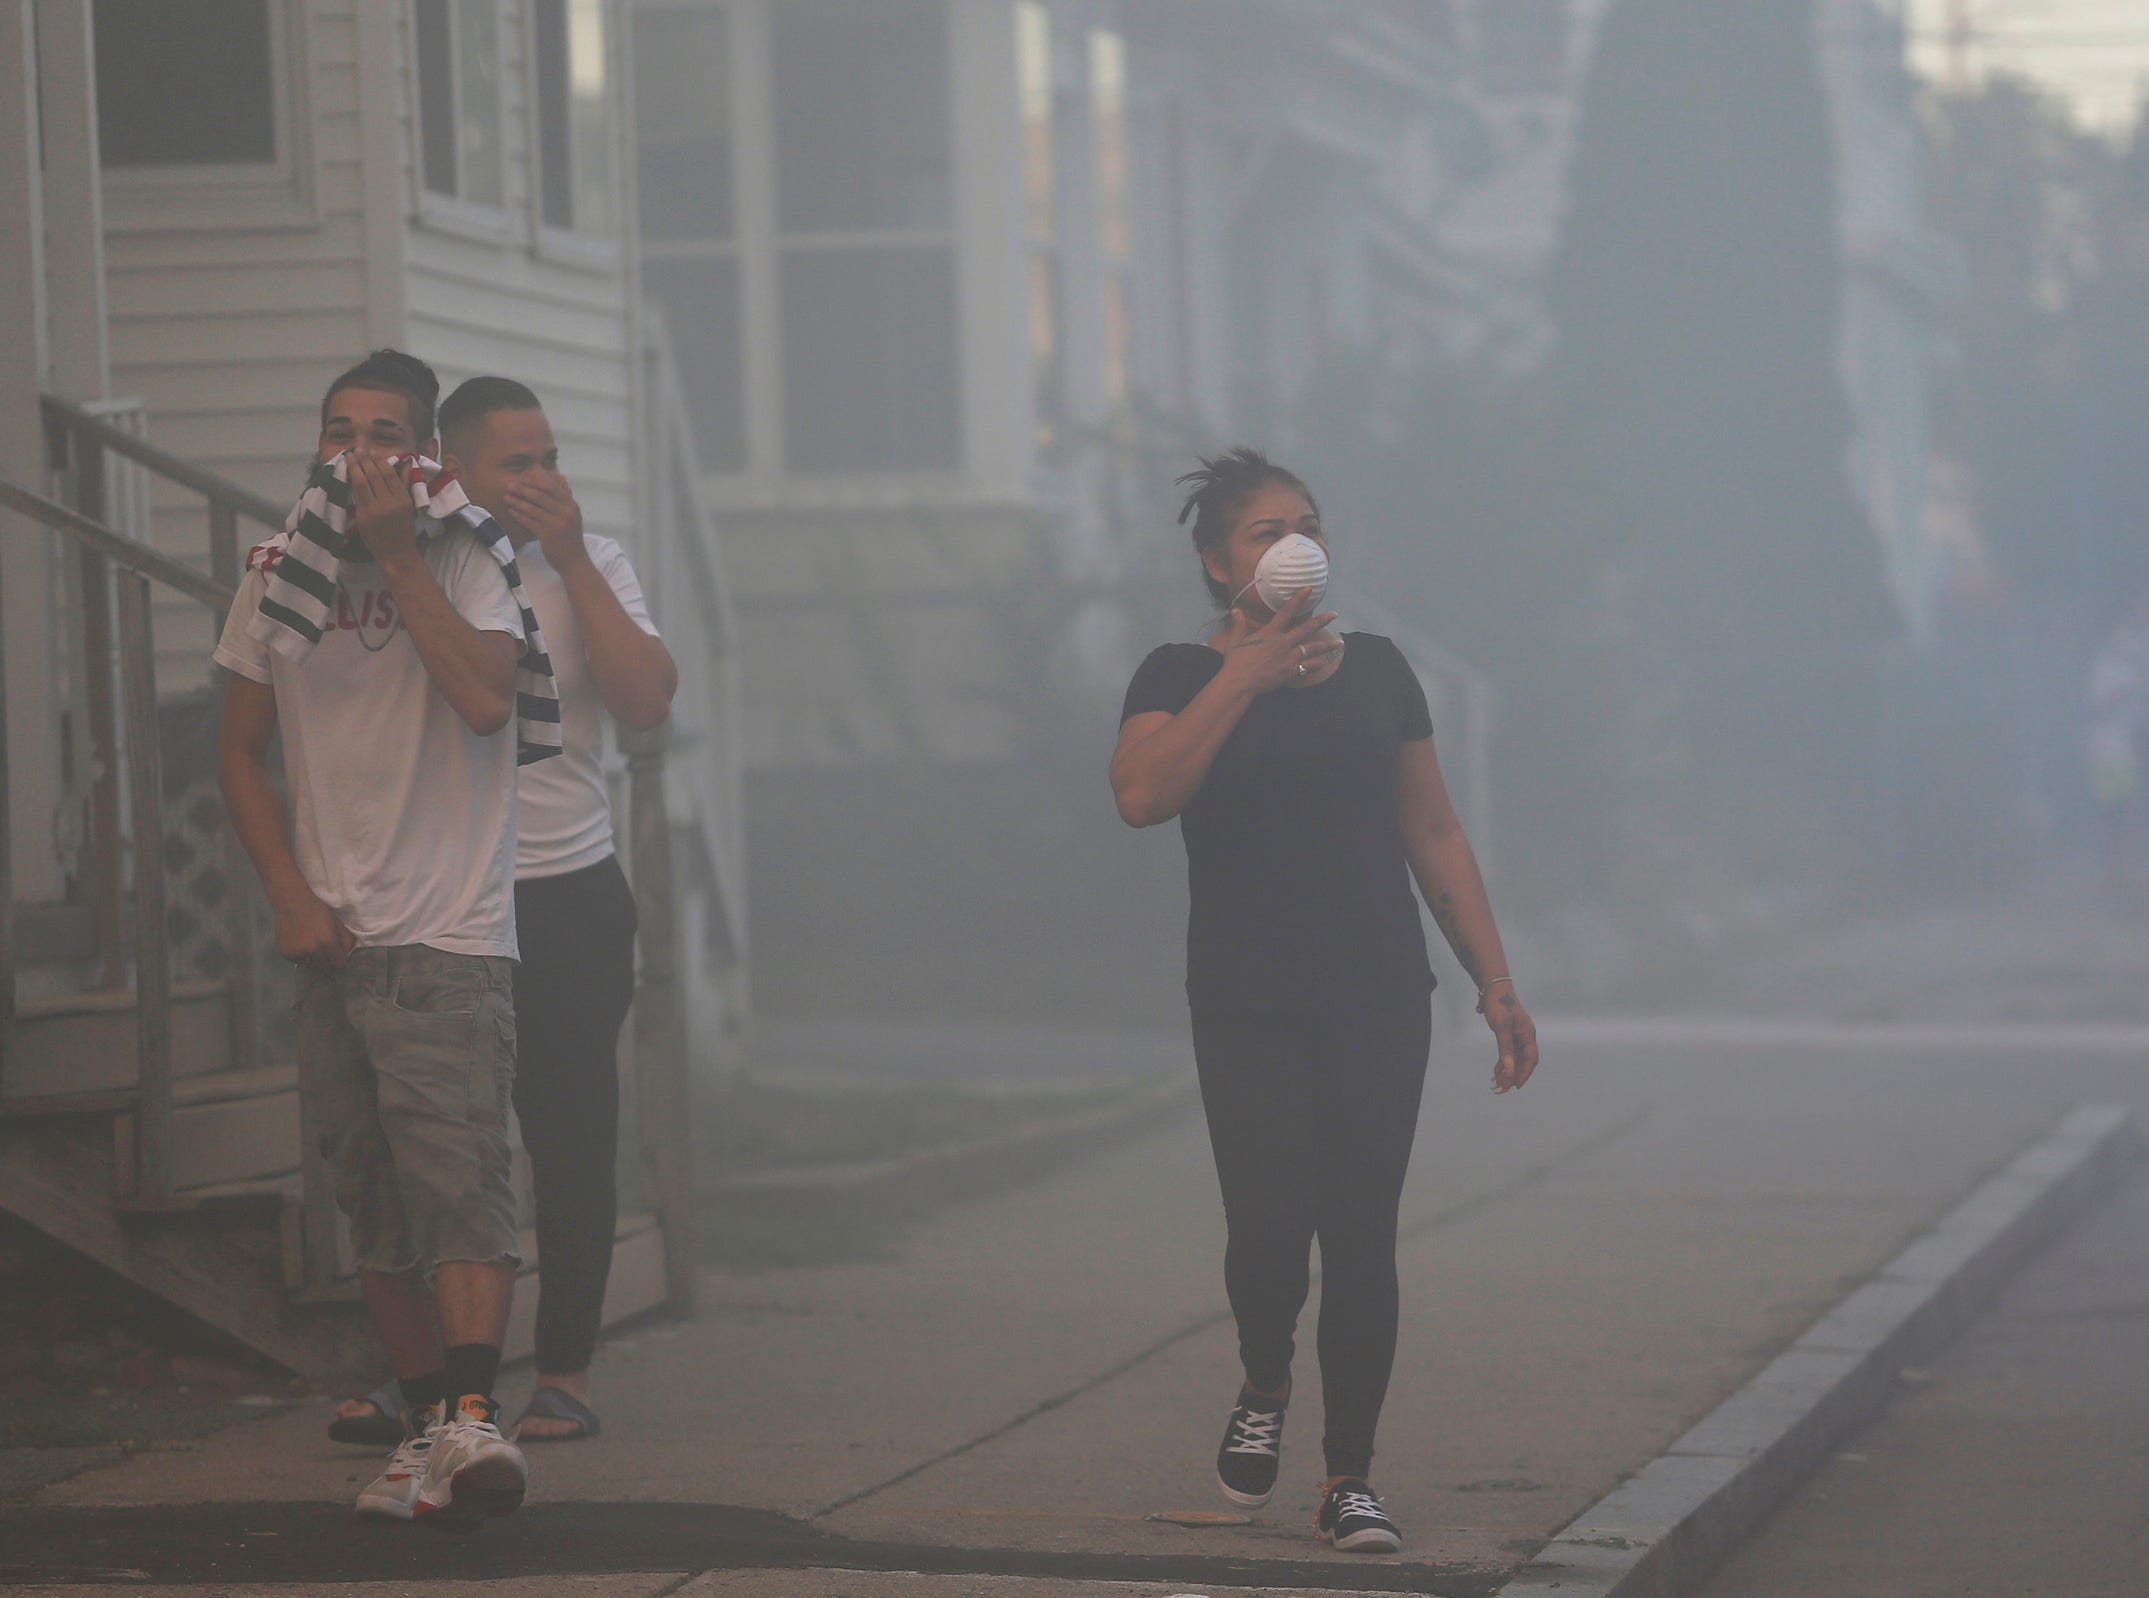 People cover their faces to protect themselves from heavy smoke from a fire on Bowdoin Street in Lawrence, Mass., Thursday.